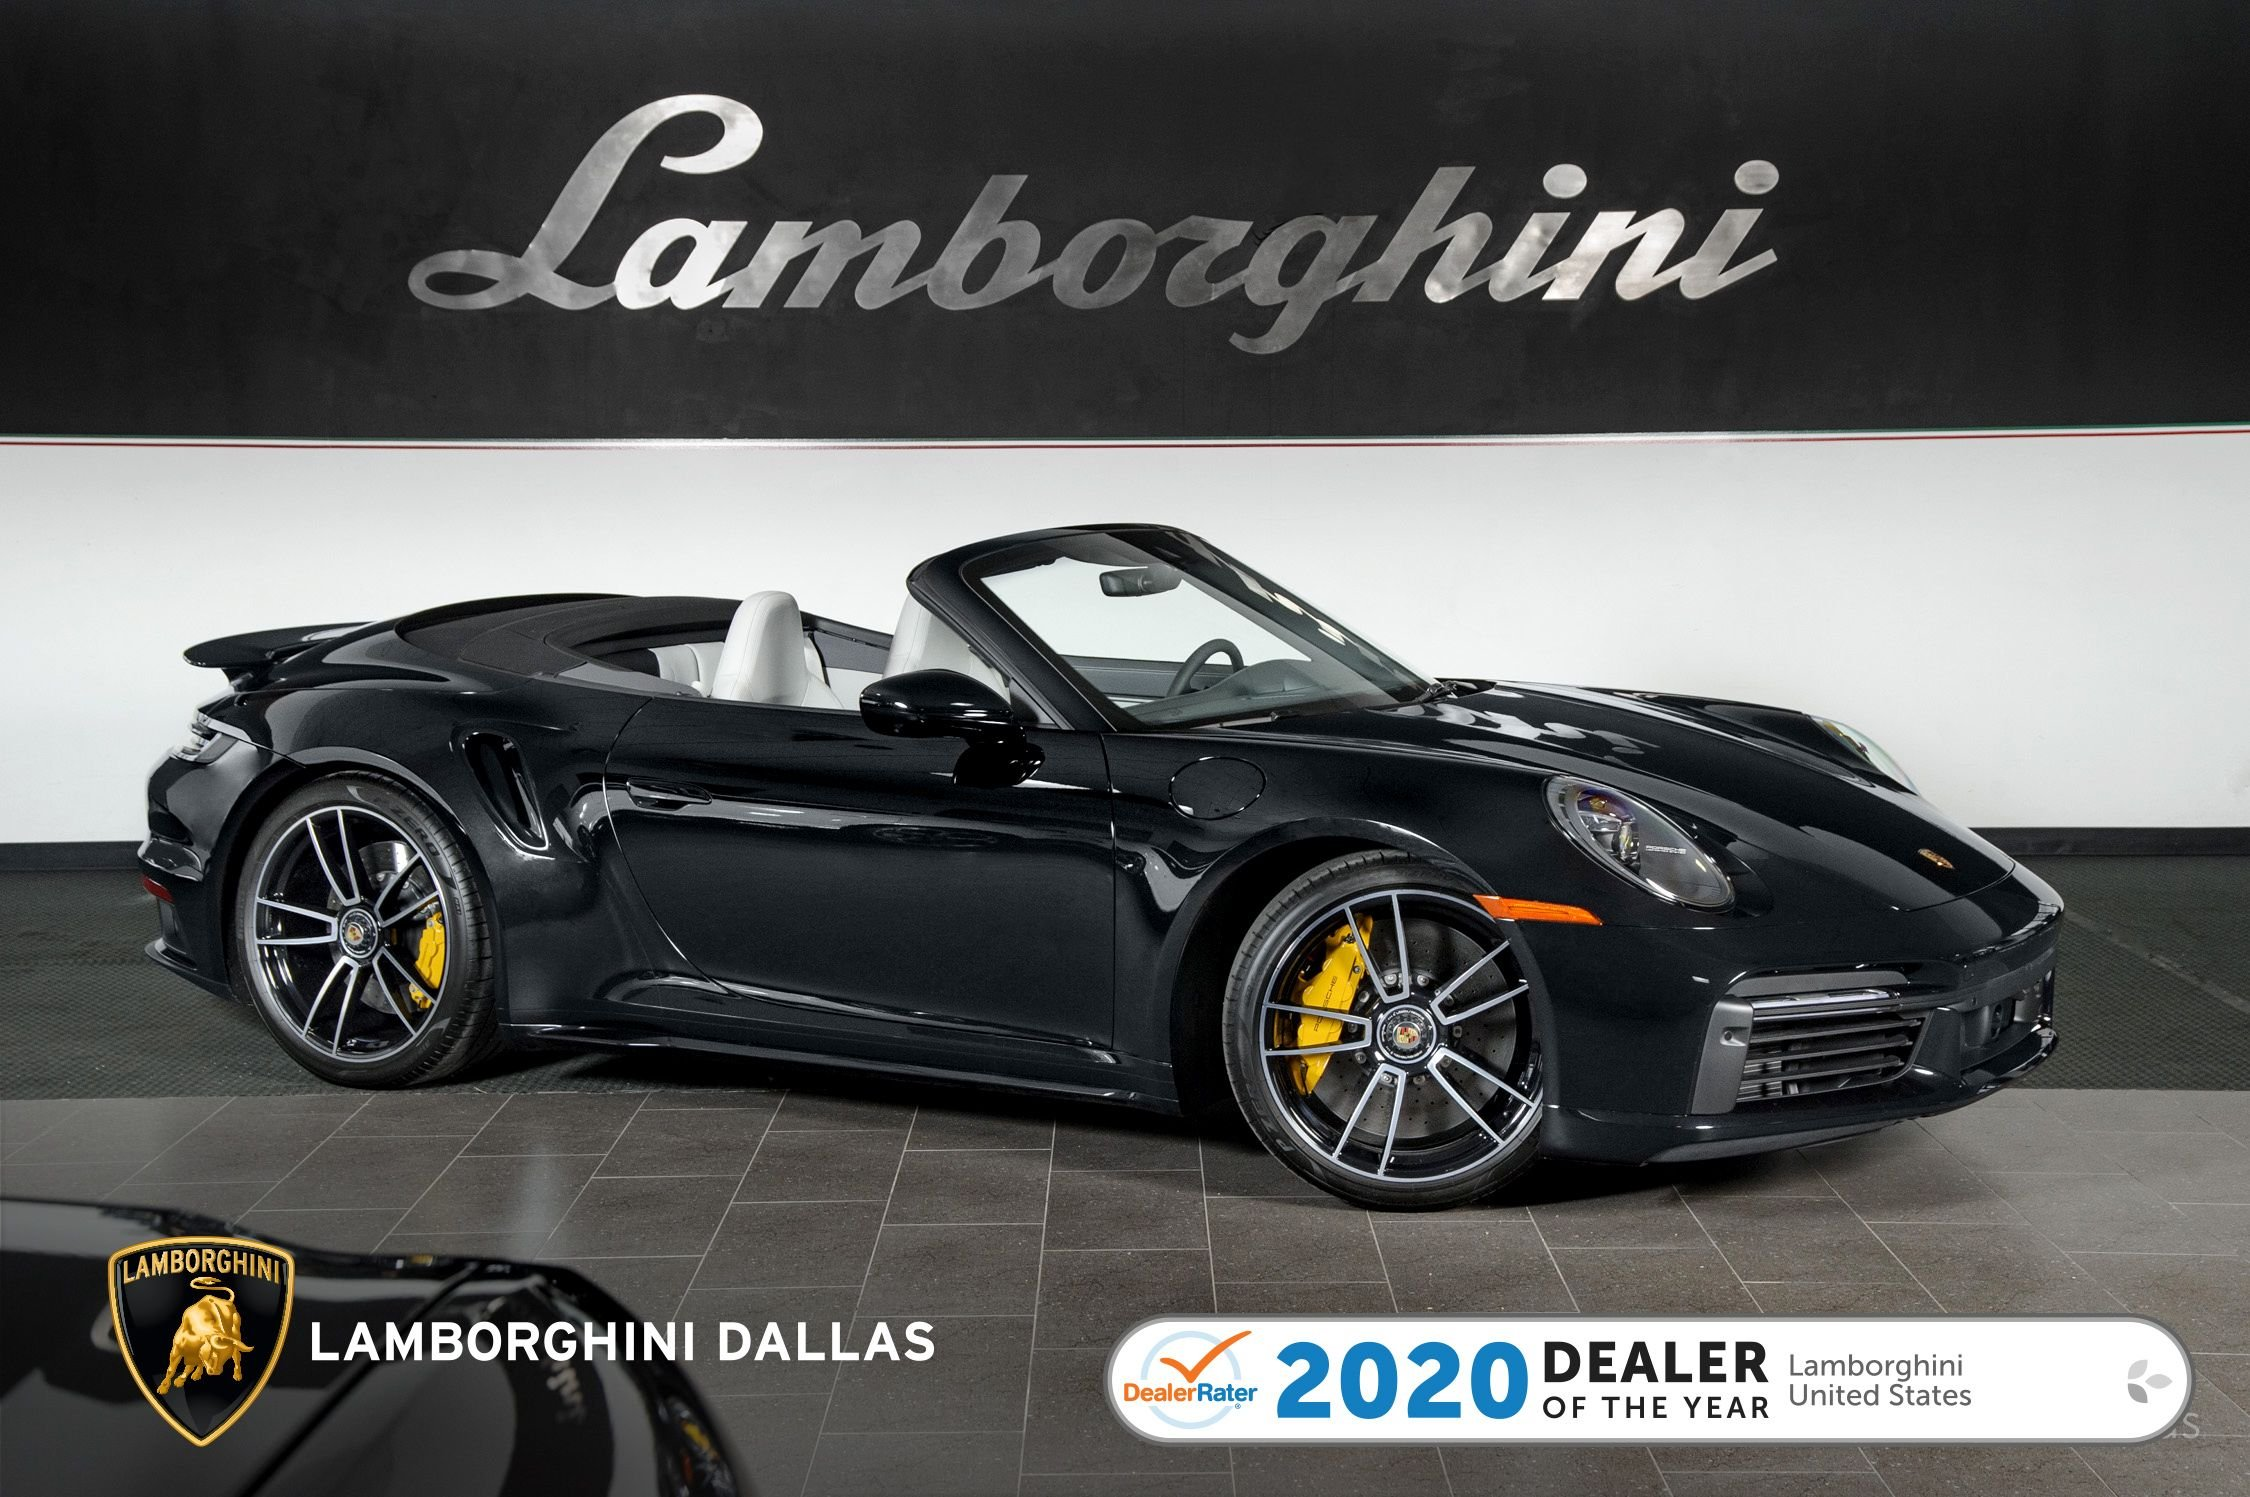 used 2021 Porsche 911 Turbo S Cabriolet car, priced at $274,999